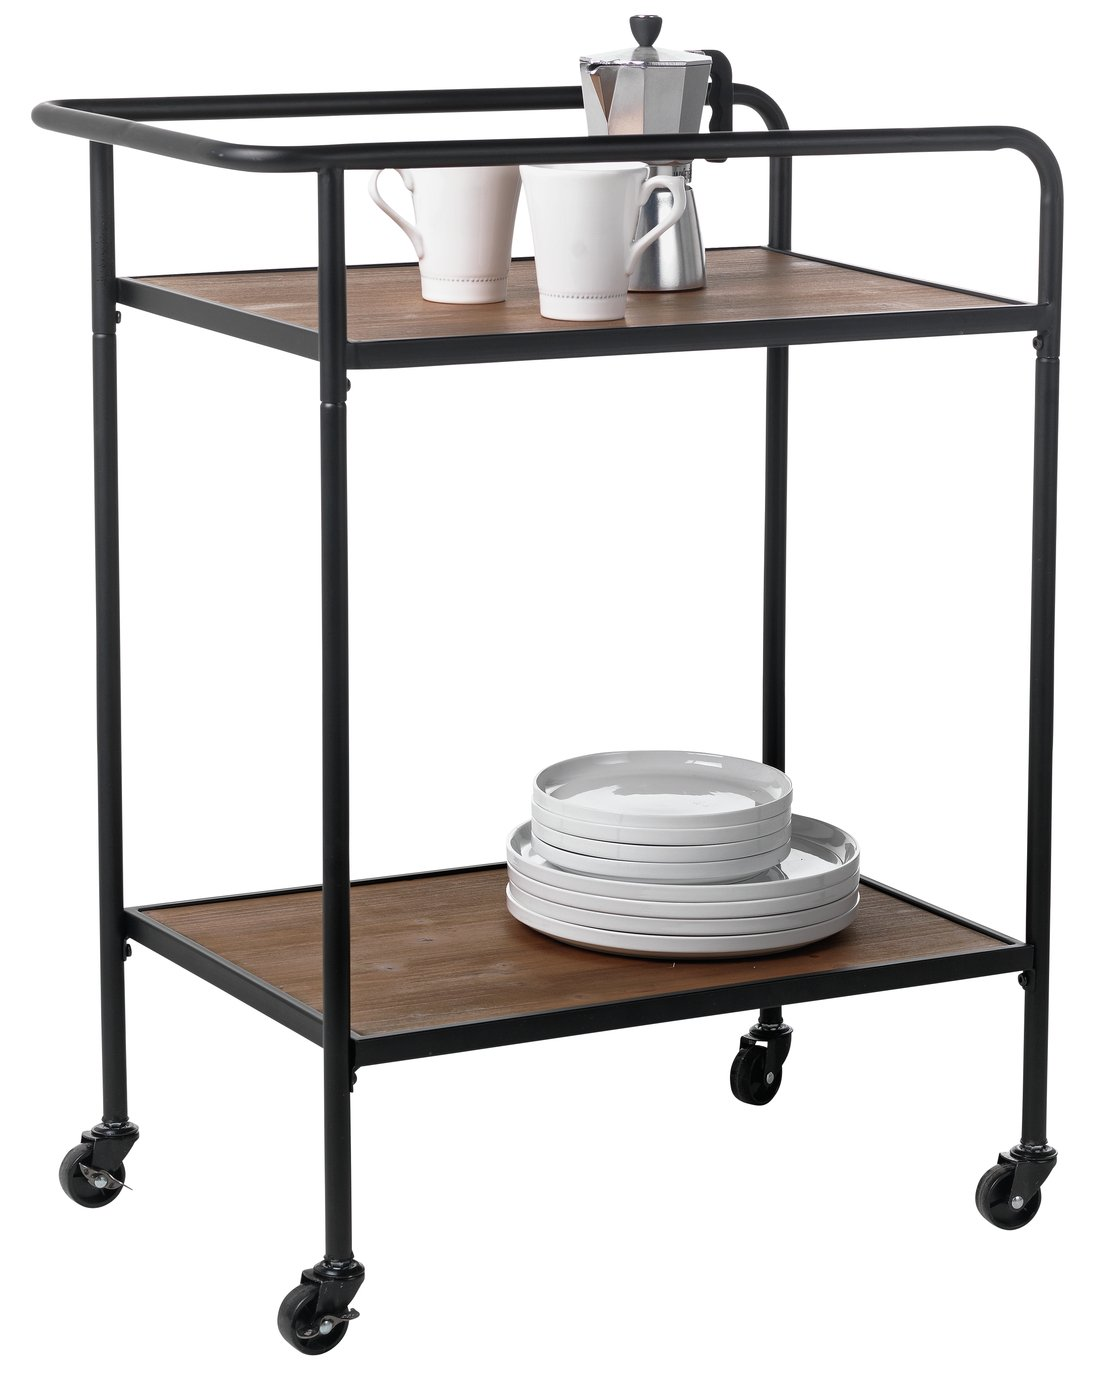 Argos Home Metal and Wood Tea Trolley